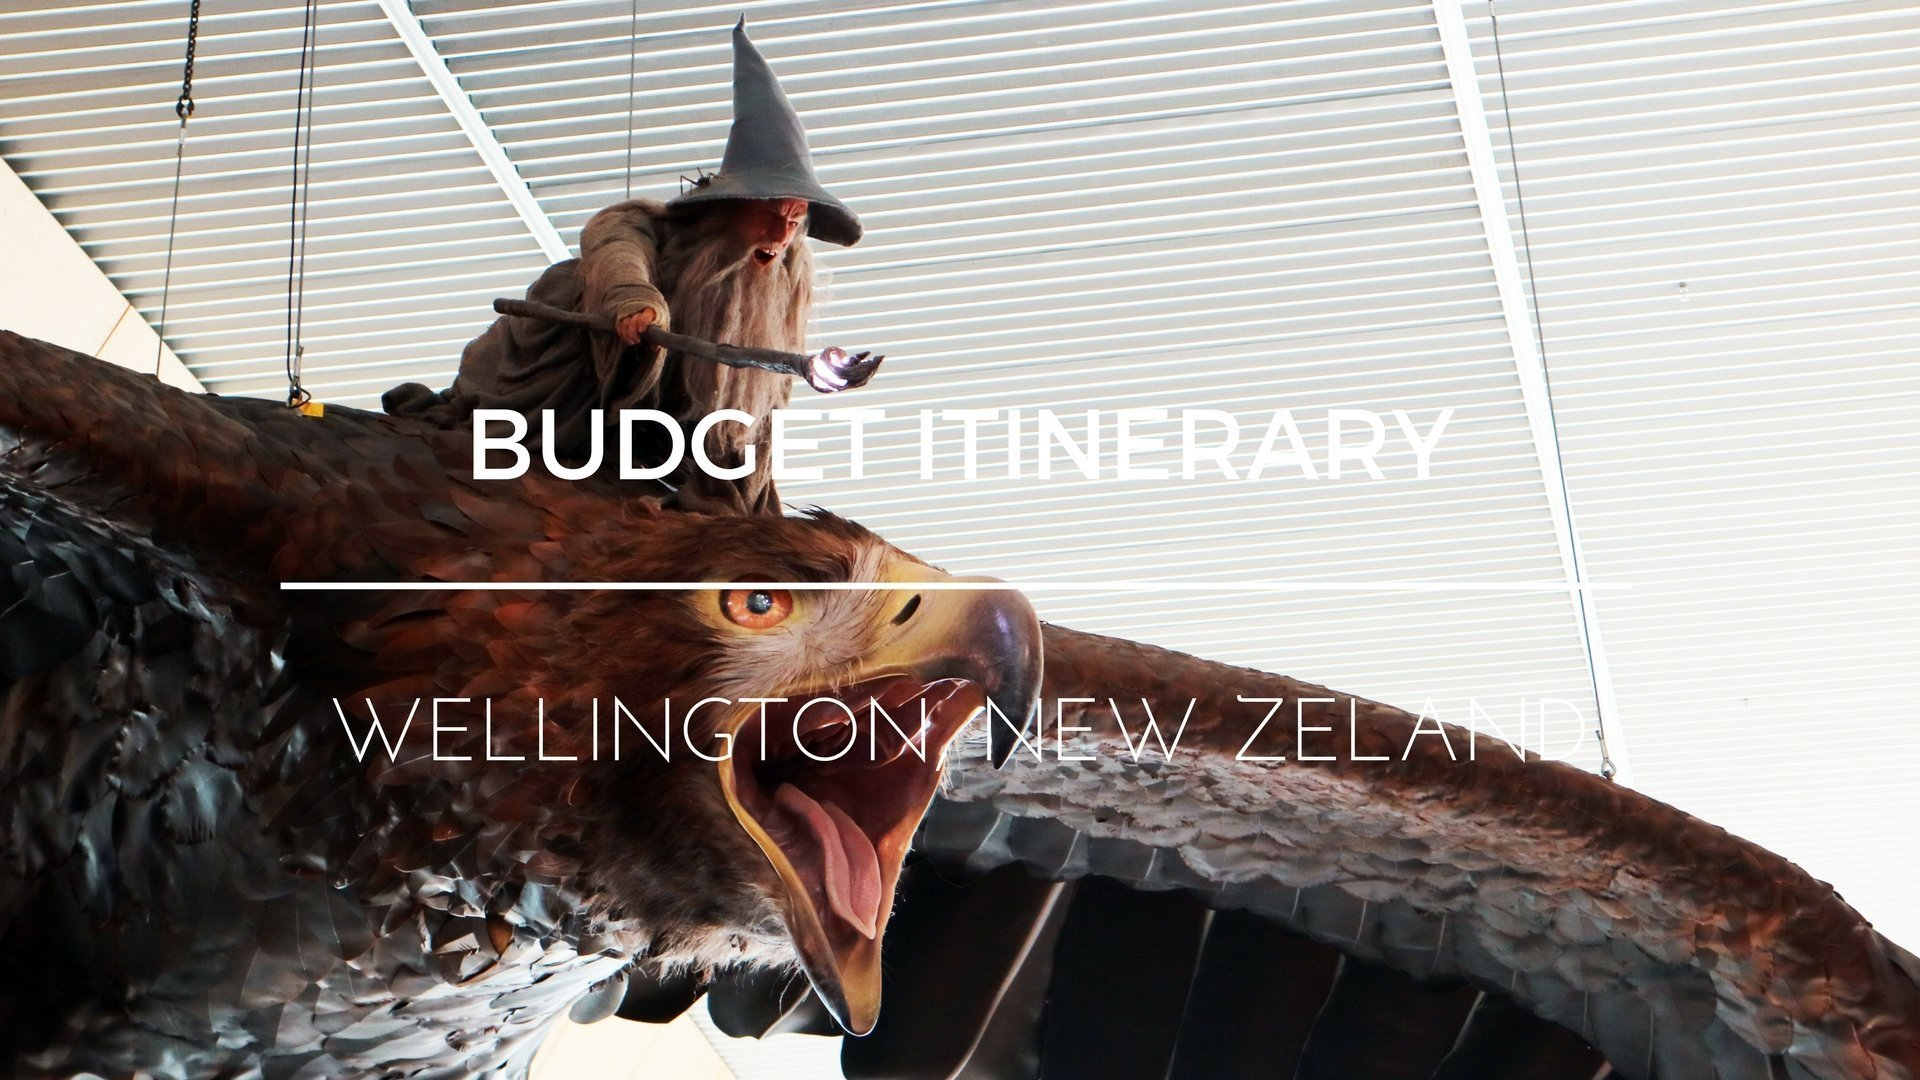 Wellington New Zealand Travel Guide